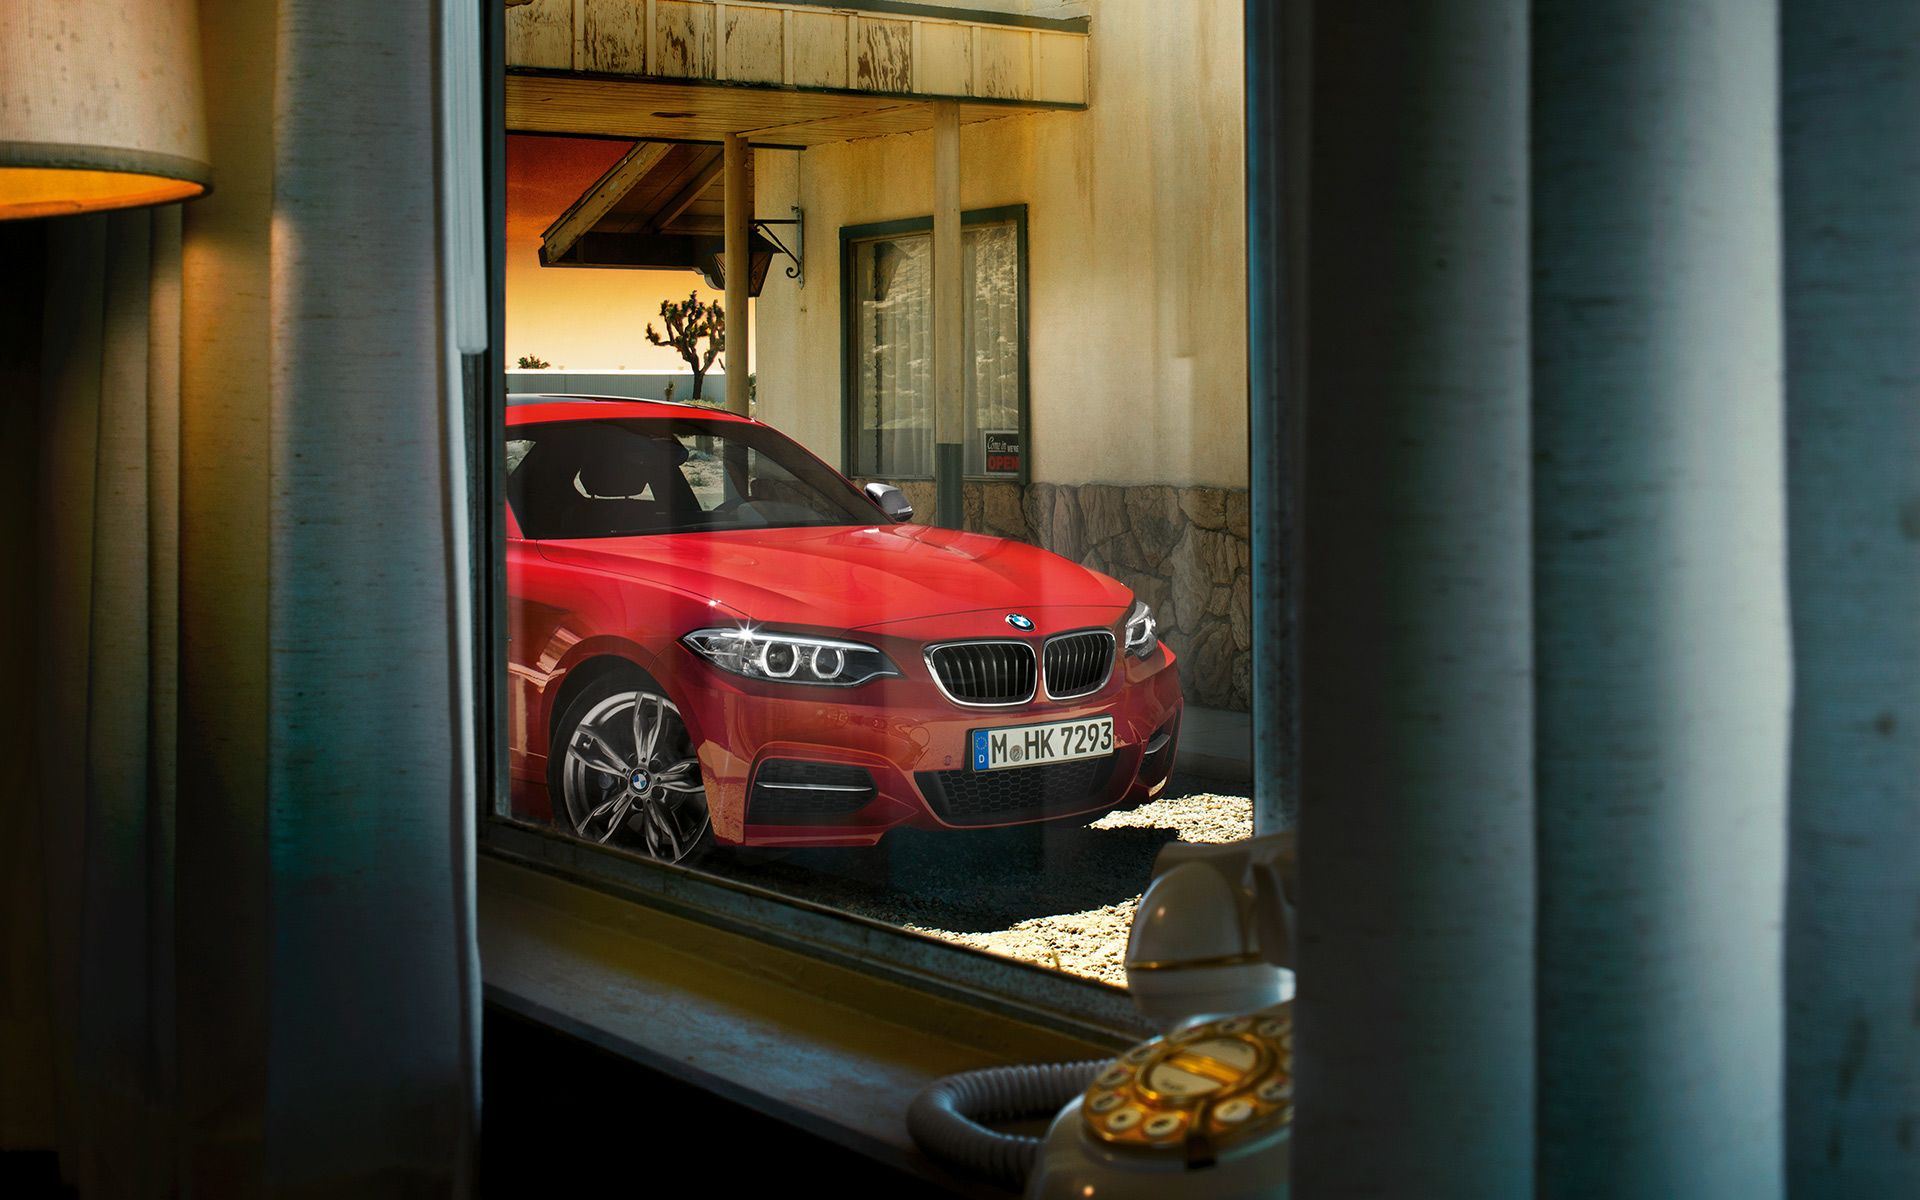 BMW Series Compact Sports Cars For Sale The Relatively New BMW - Small sports cars for sale